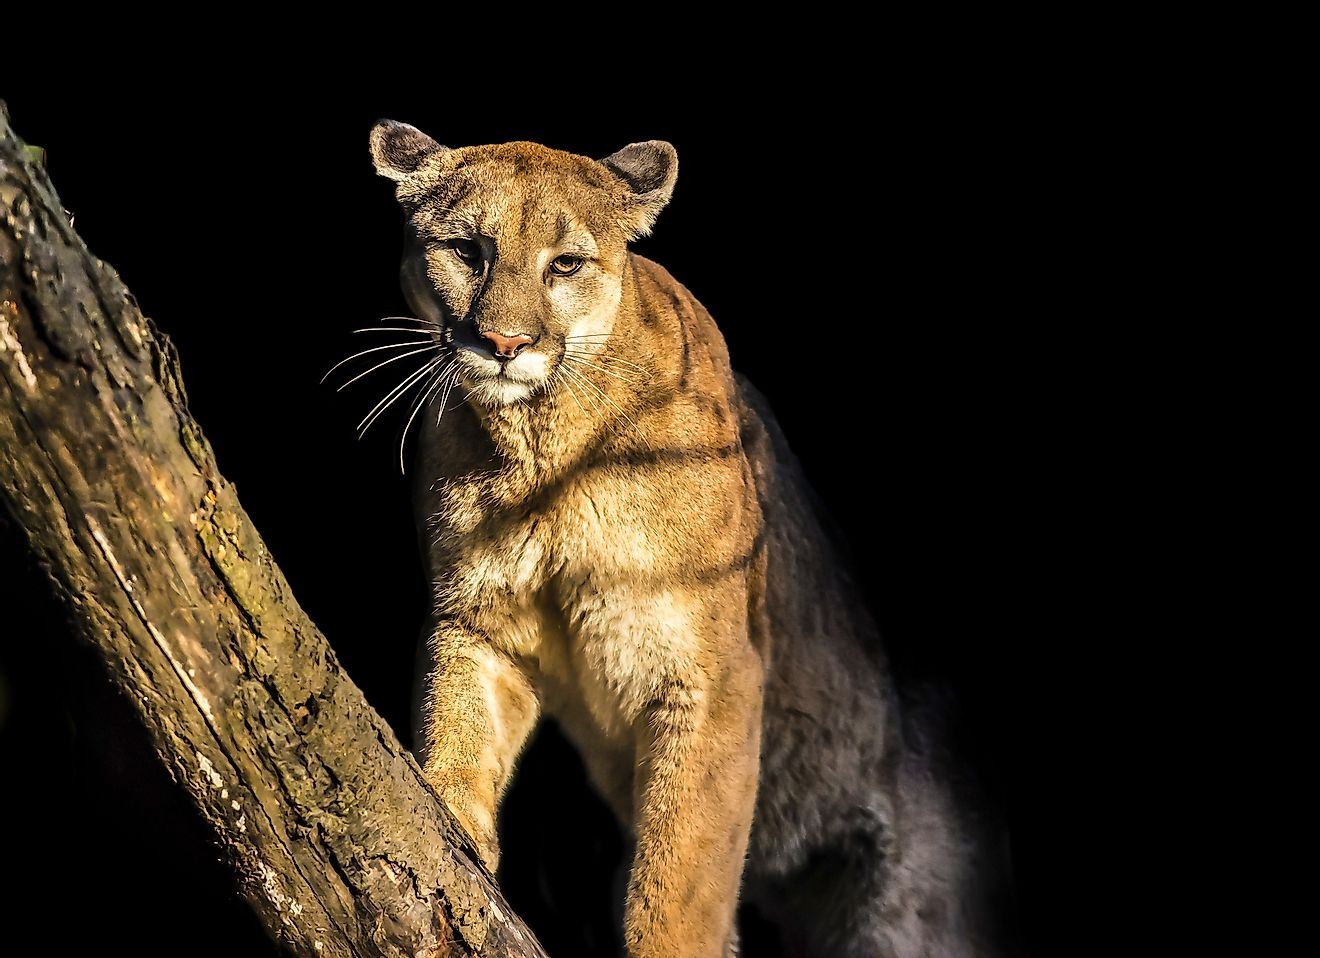 A gorgeous adult mountain lion. Image credit: Kris Wiktor/Shutterstock.com